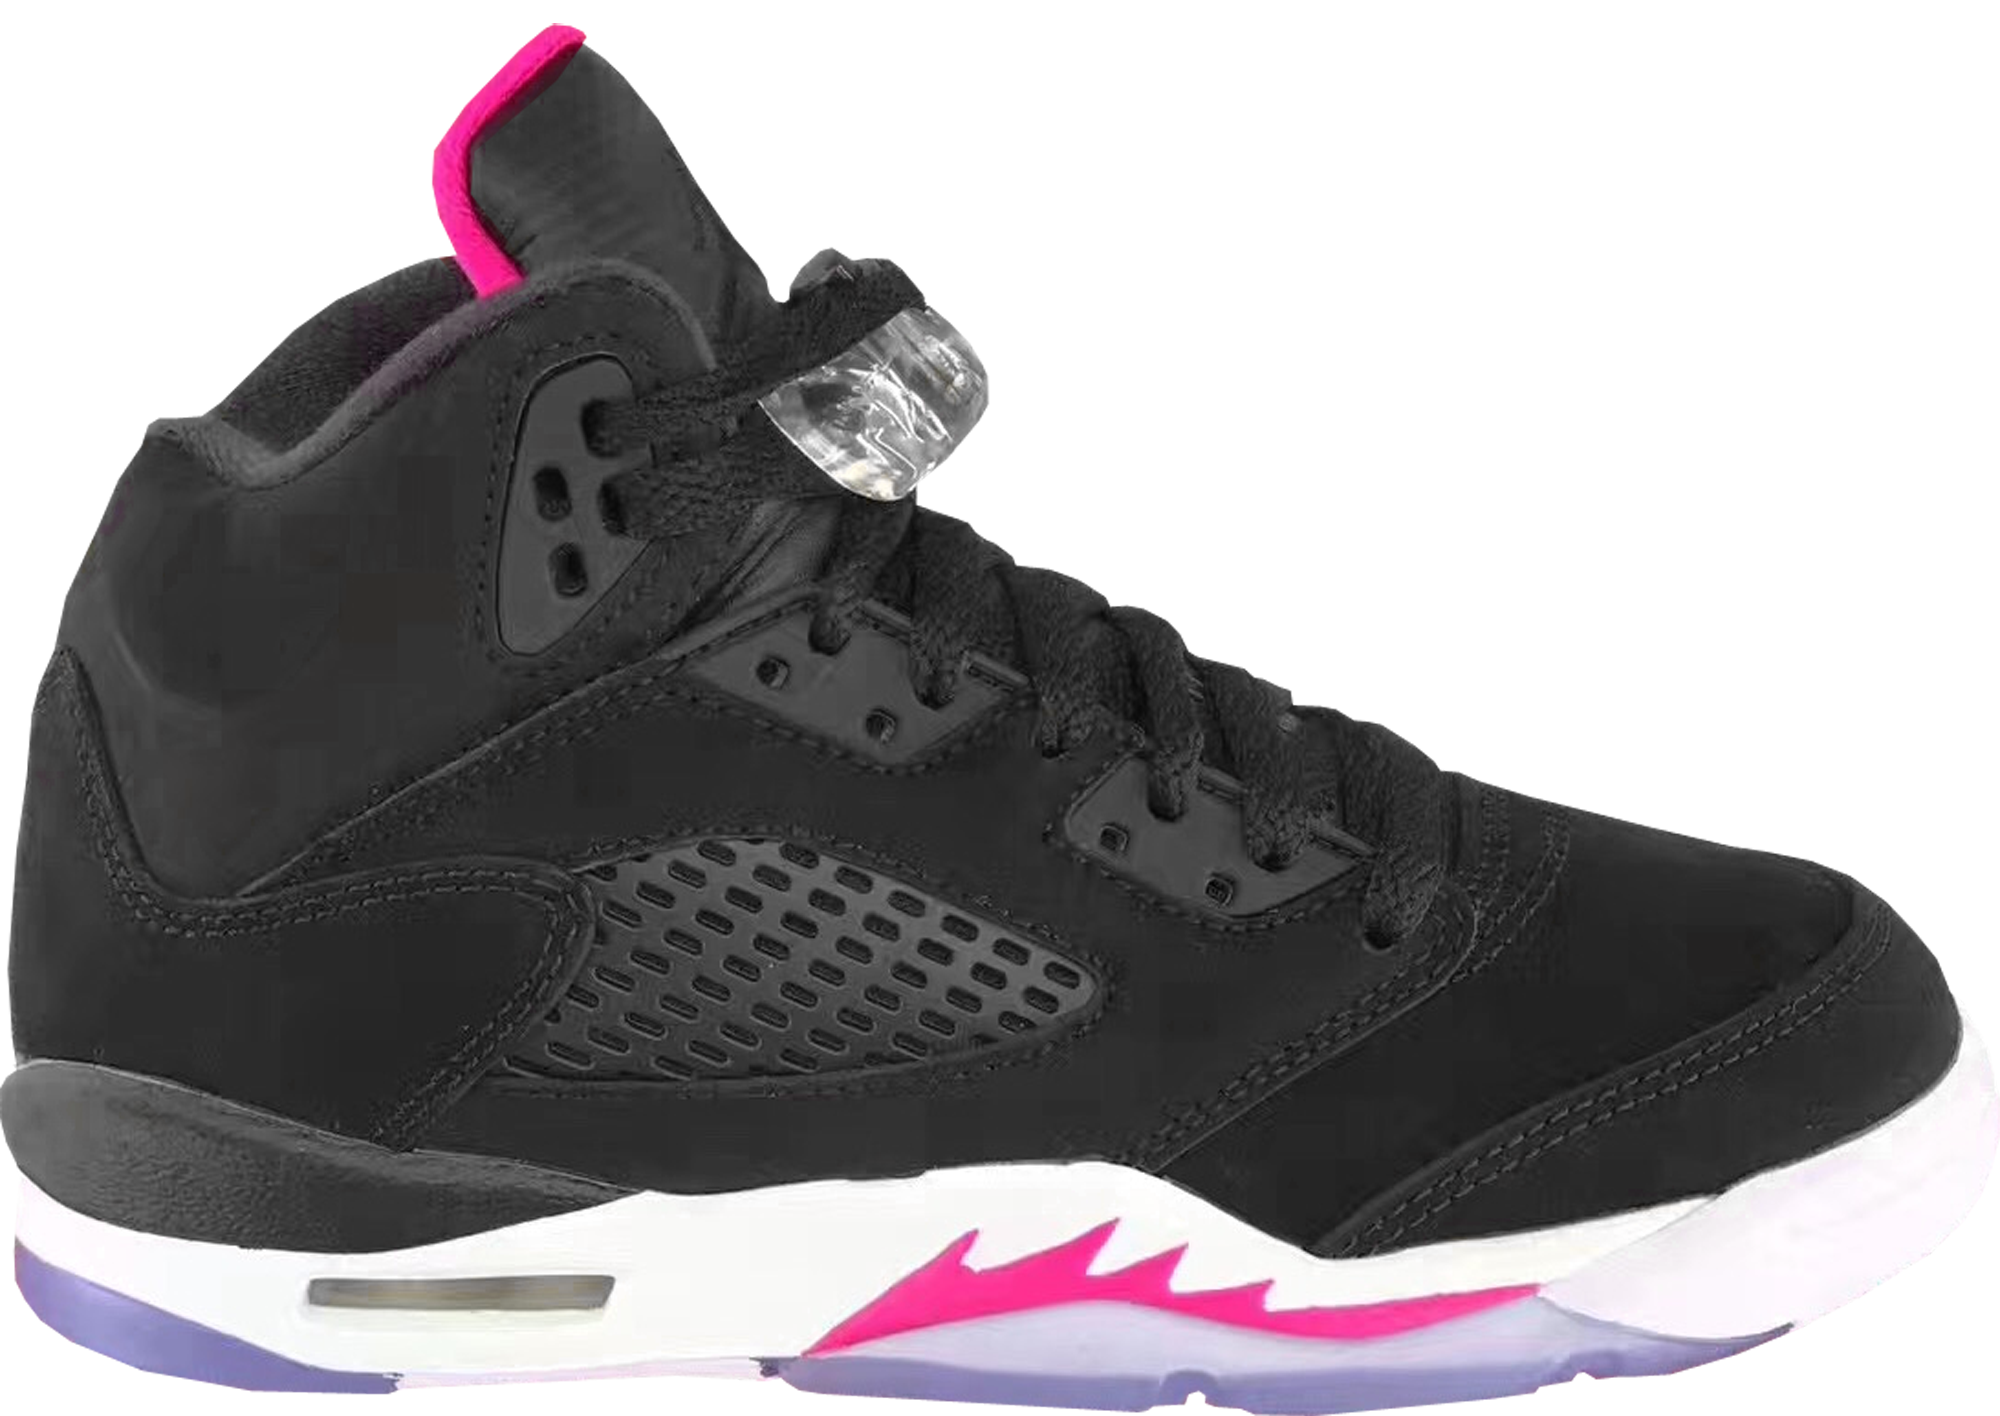 low priced 5d7d2 67787 Girls Air Jordan 5 Retro GG Black Deadly Pink - StockX News